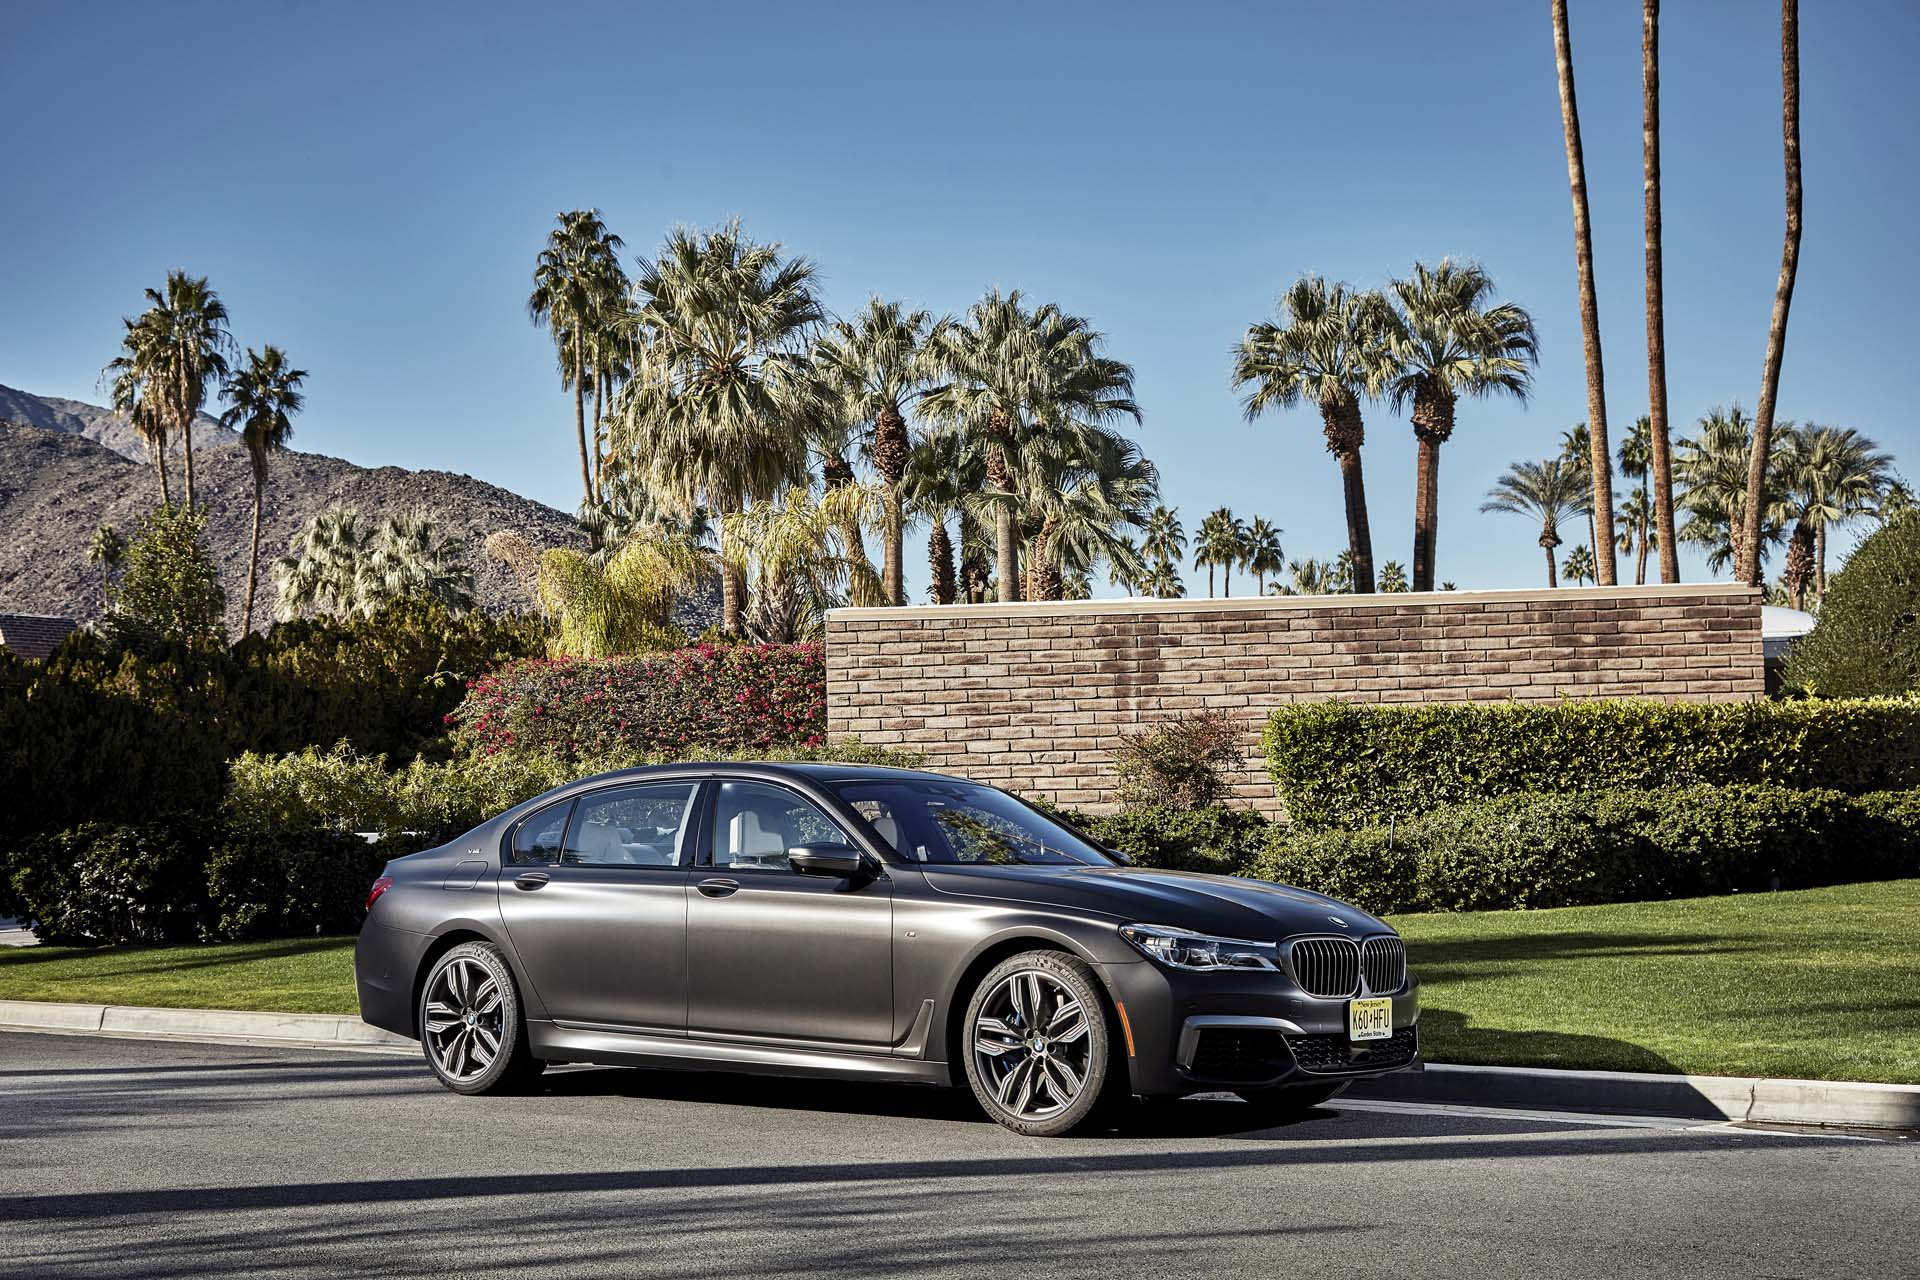 new and used bmw 7 series prices photos reviews specs the car connection. Black Bedroom Furniture Sets. Home Design Ideas